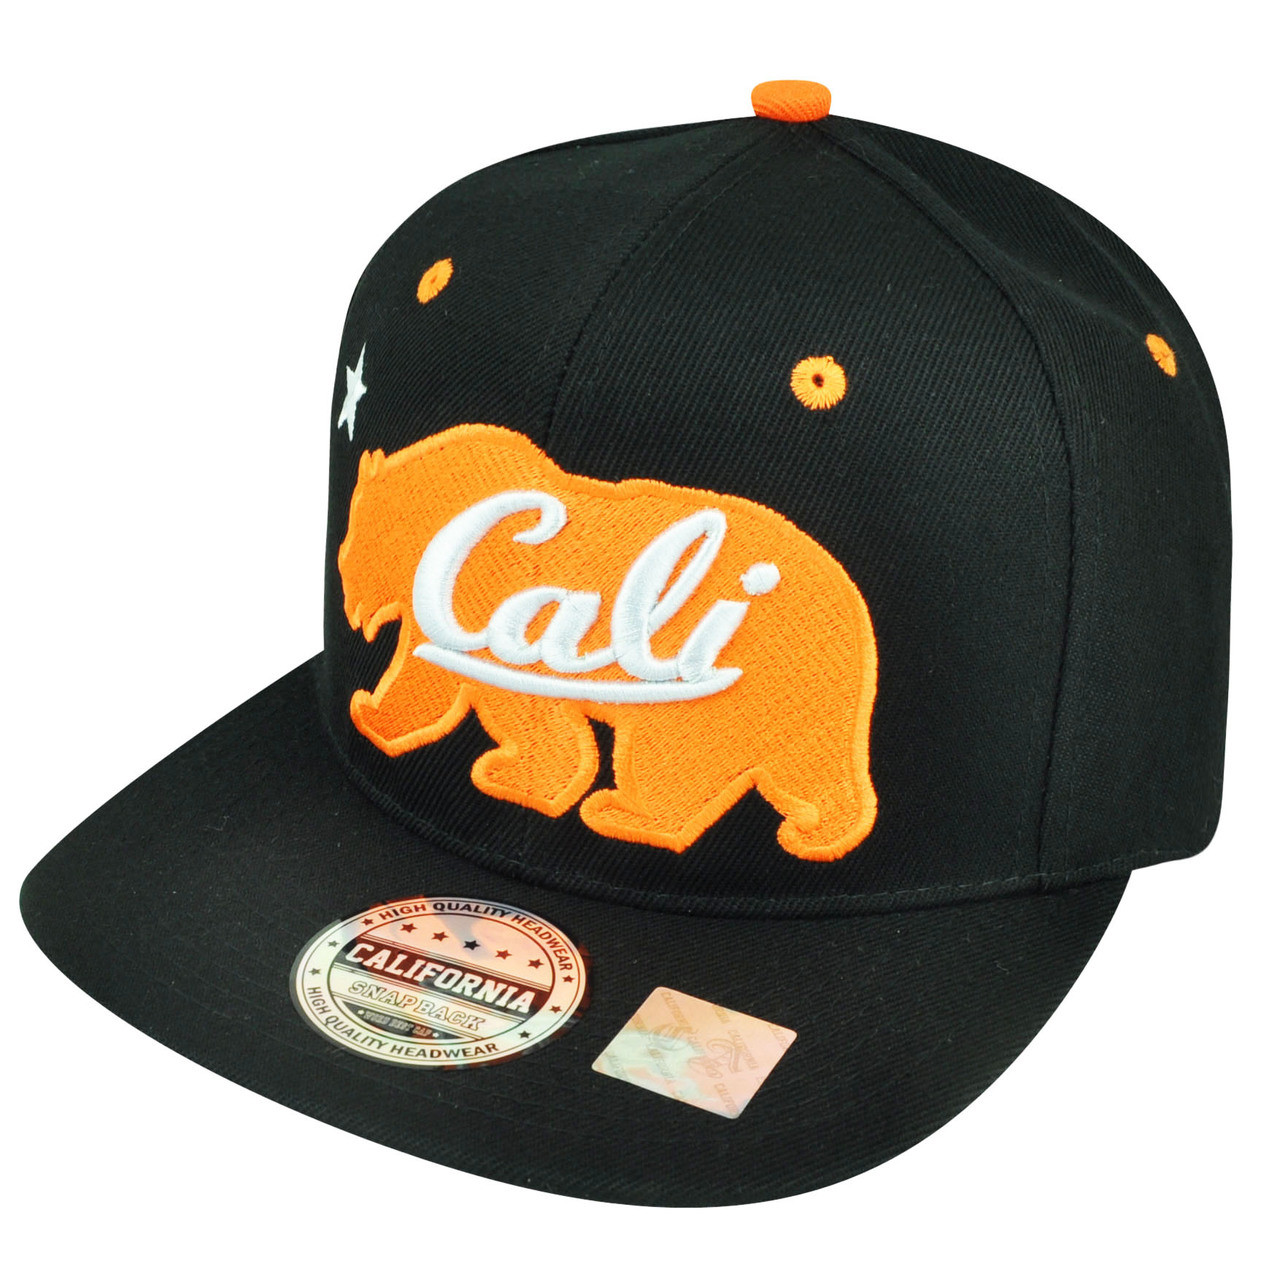 6bd4c159686 California Republic Cali Orange Bear Logo Solid Black Snapback Flat Bill  Hat Cap. Your Price   24.95 (You save  3.05). Image 1